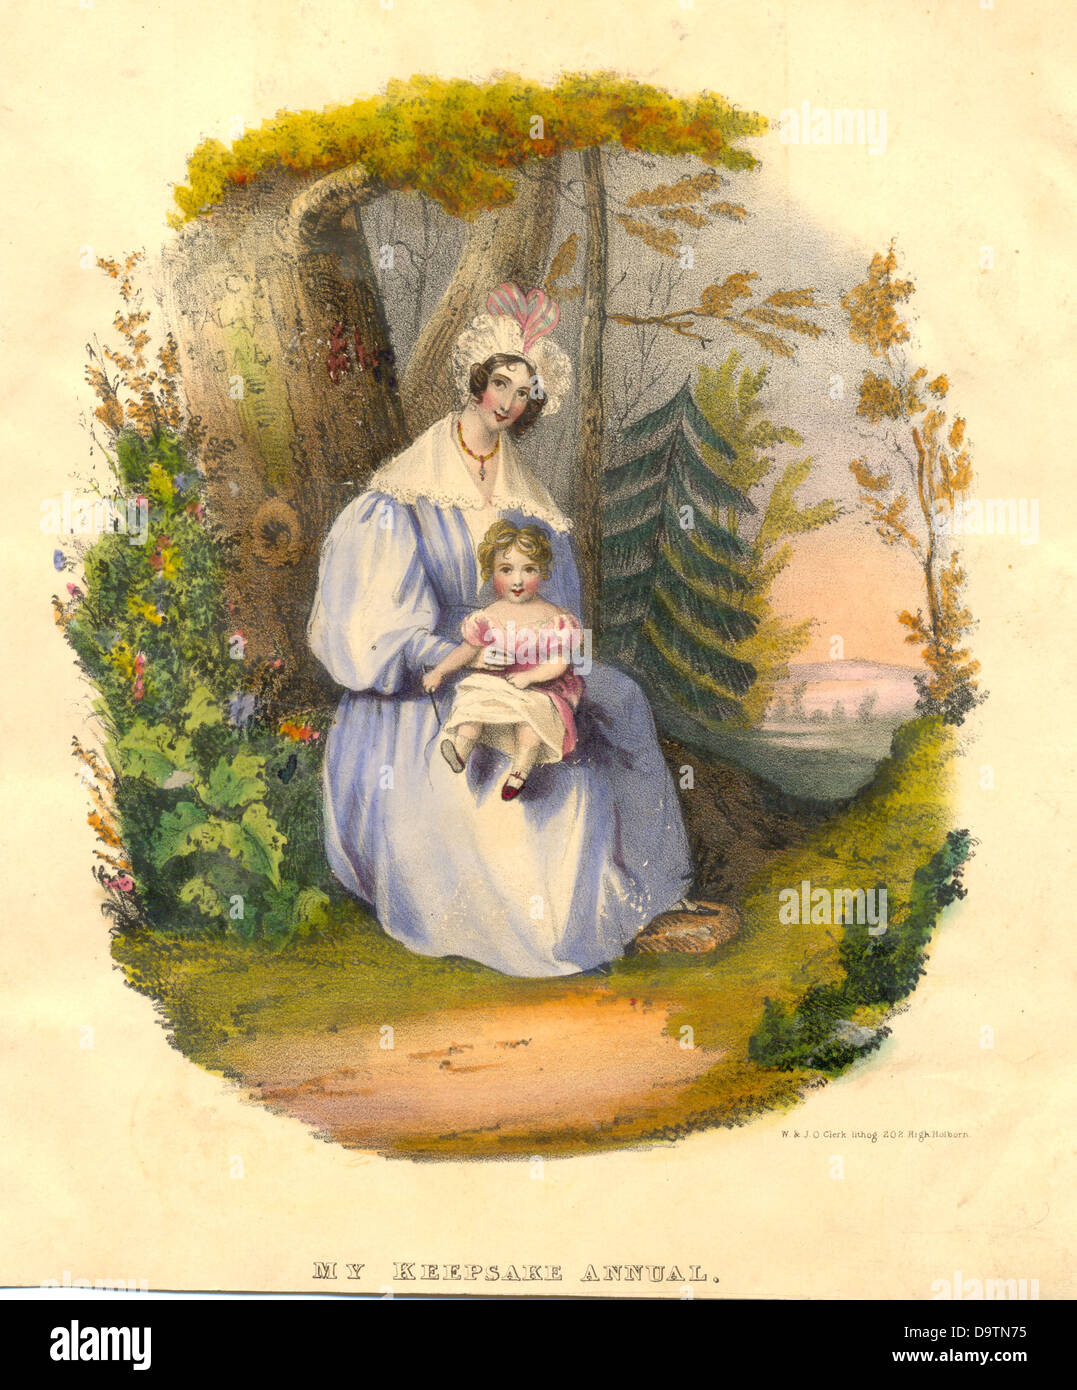 Hand coloured lithograph of Keepsake Annual frontispiece - Stock Image